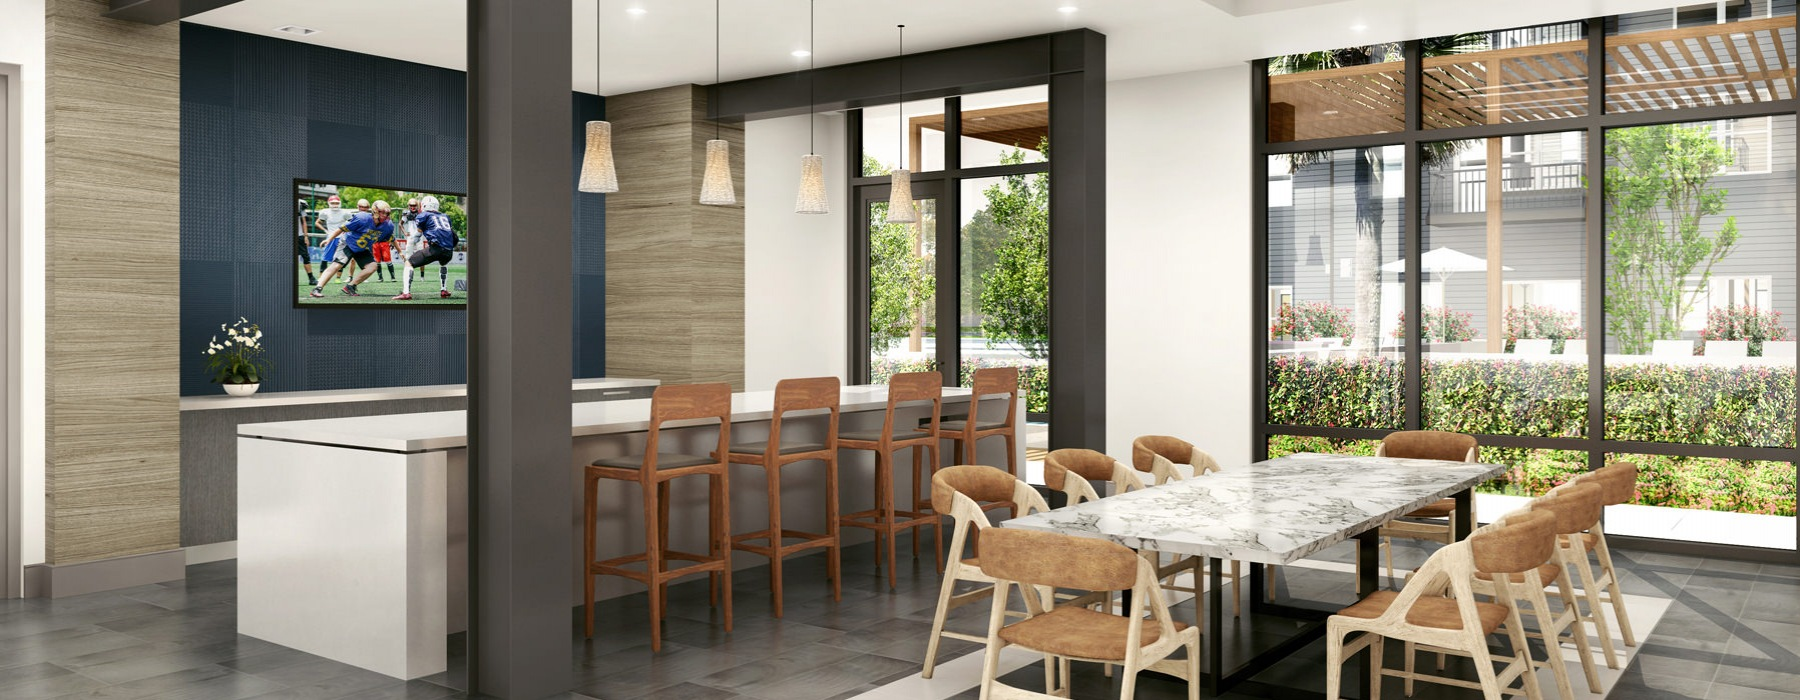 Residents lounge has a galley kitchen and floor-to-ceiling windows